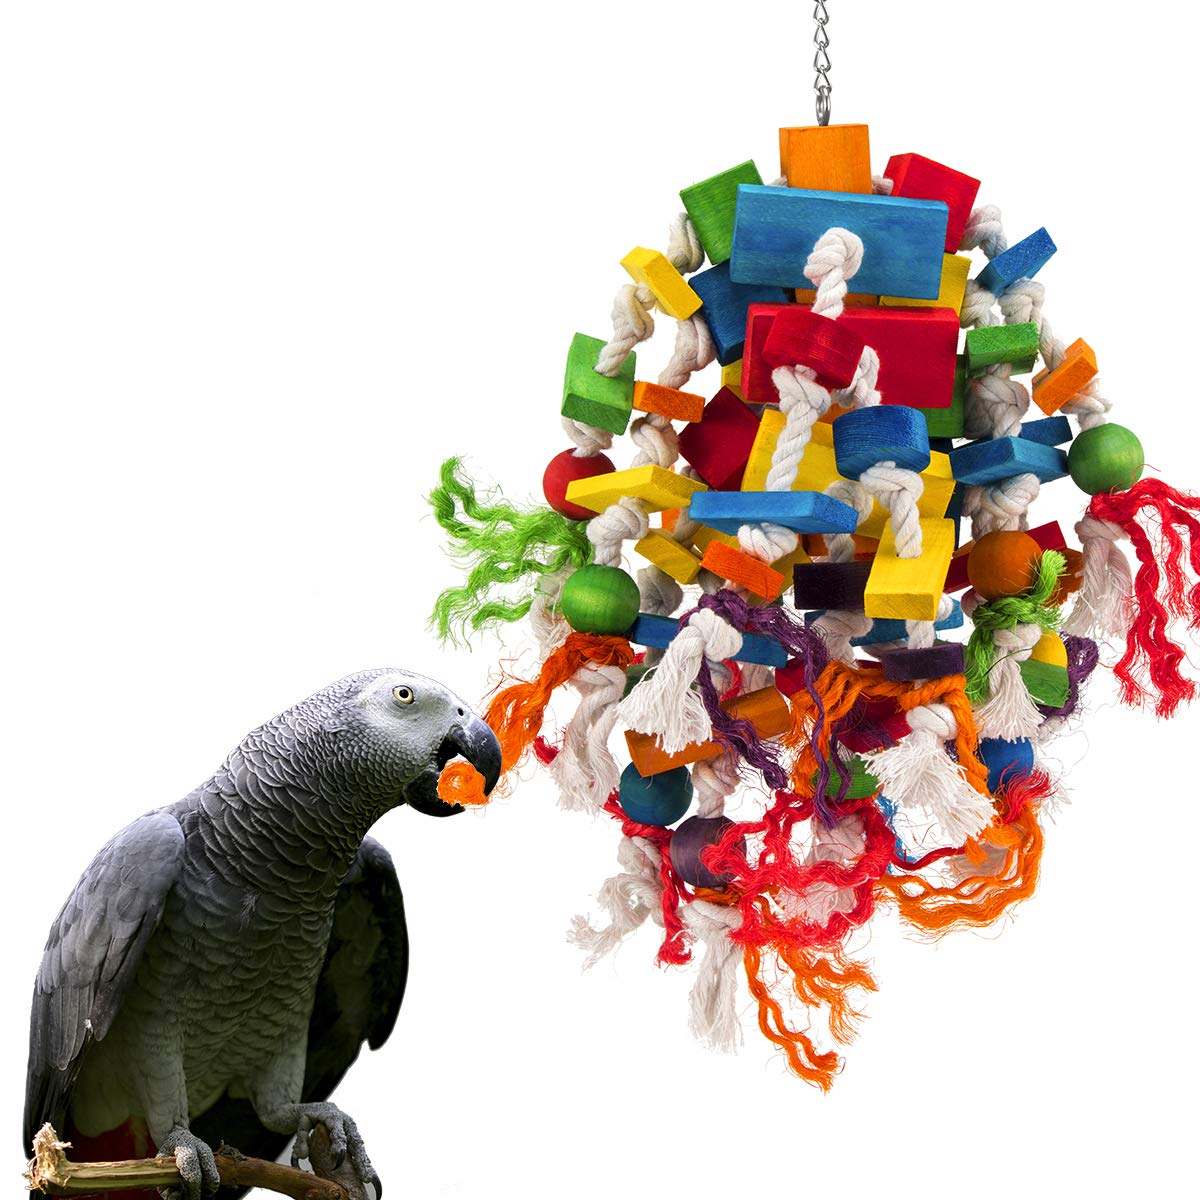 MEWTOGO Large Parrot Toy Multicolored Wooden Blocks Tearing Toys for Birds Suggested for African Grey Cockatoos and a Variety of Amazon Parrots.